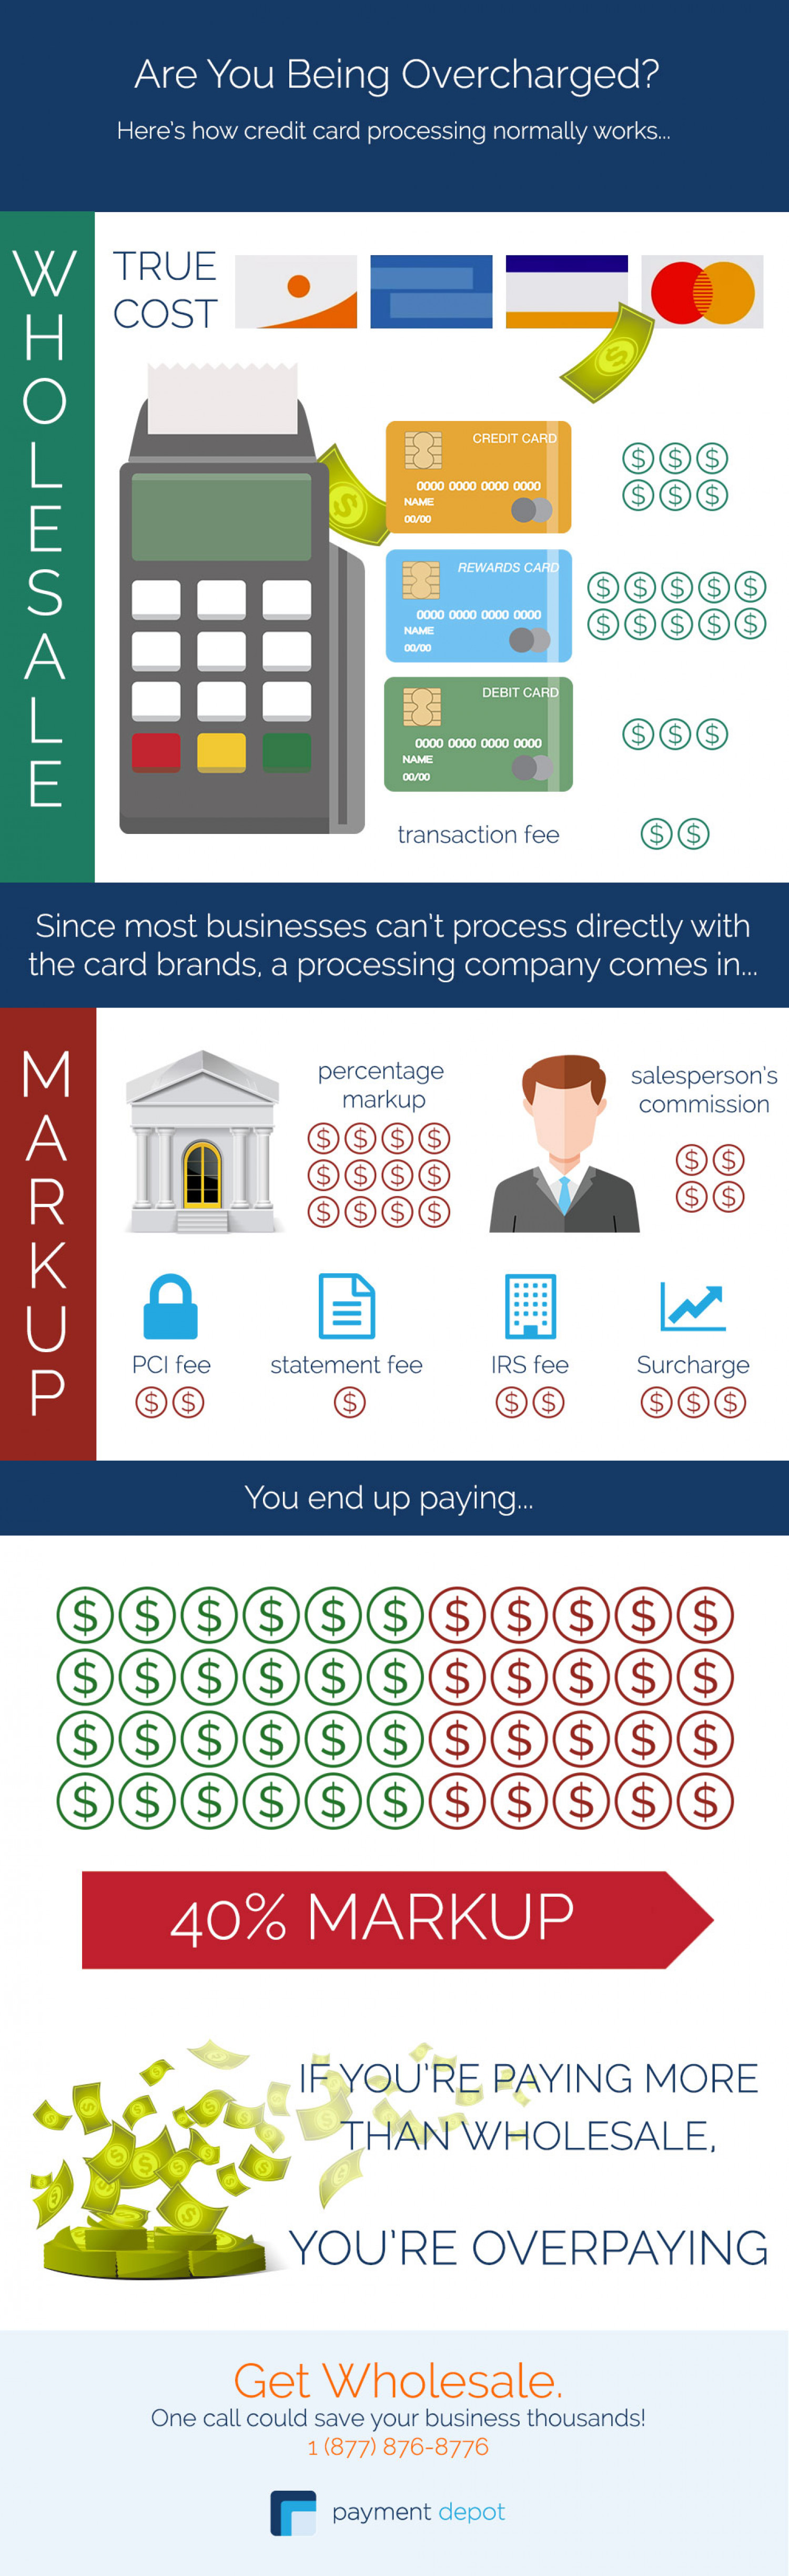 How Credit Card Processing Normally Works Infographic